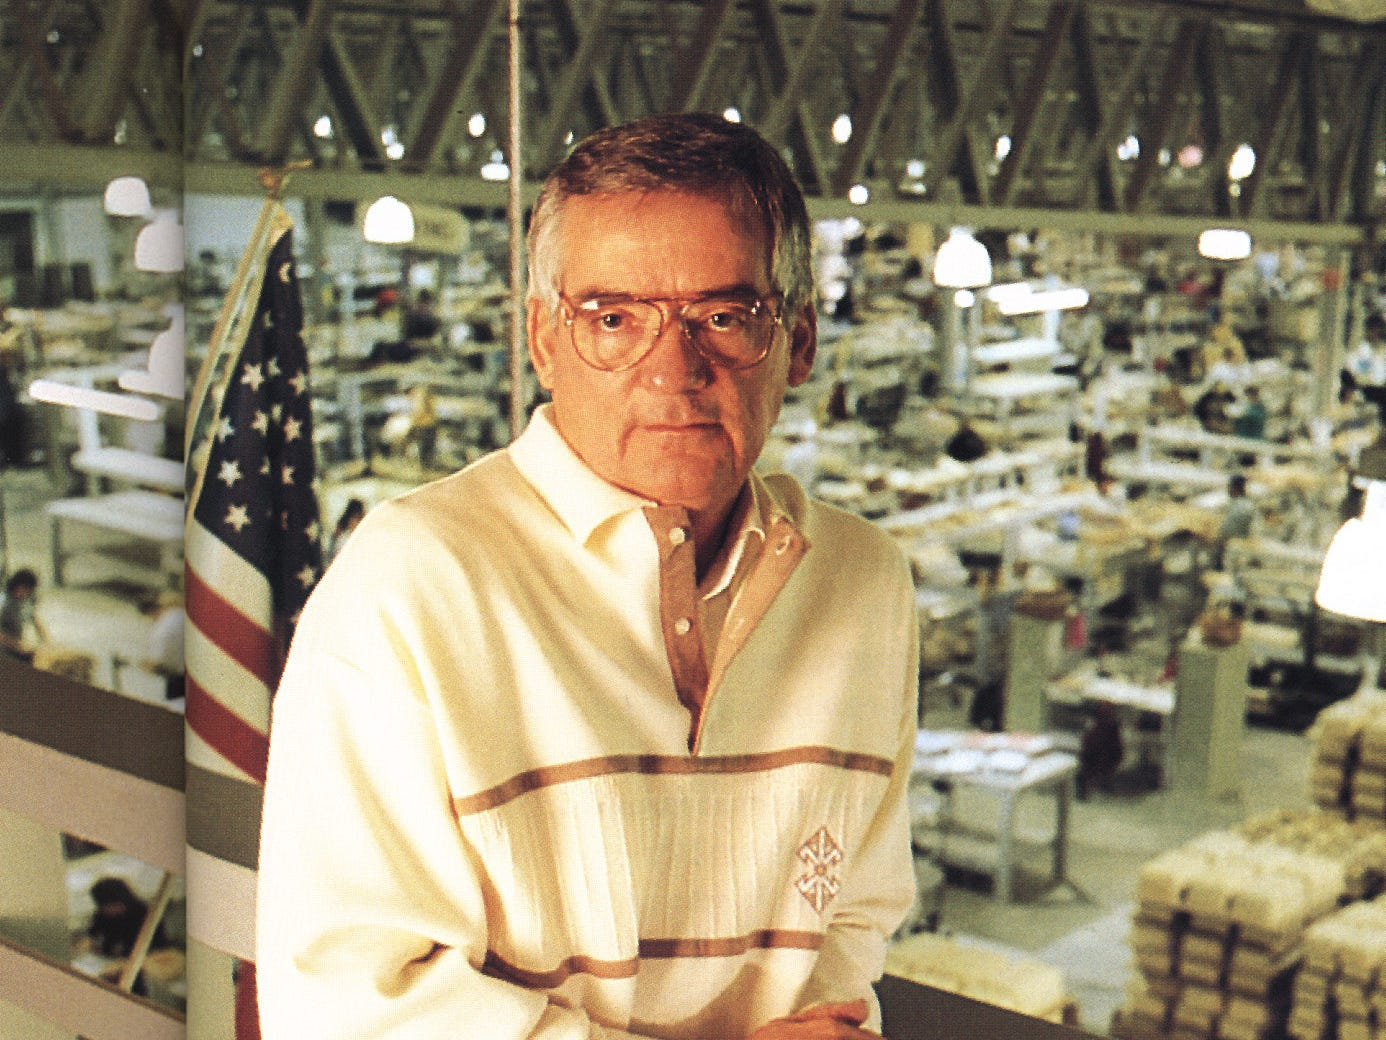 Dave Longaberger overlooking the production floor at the Longaberger Homestead.